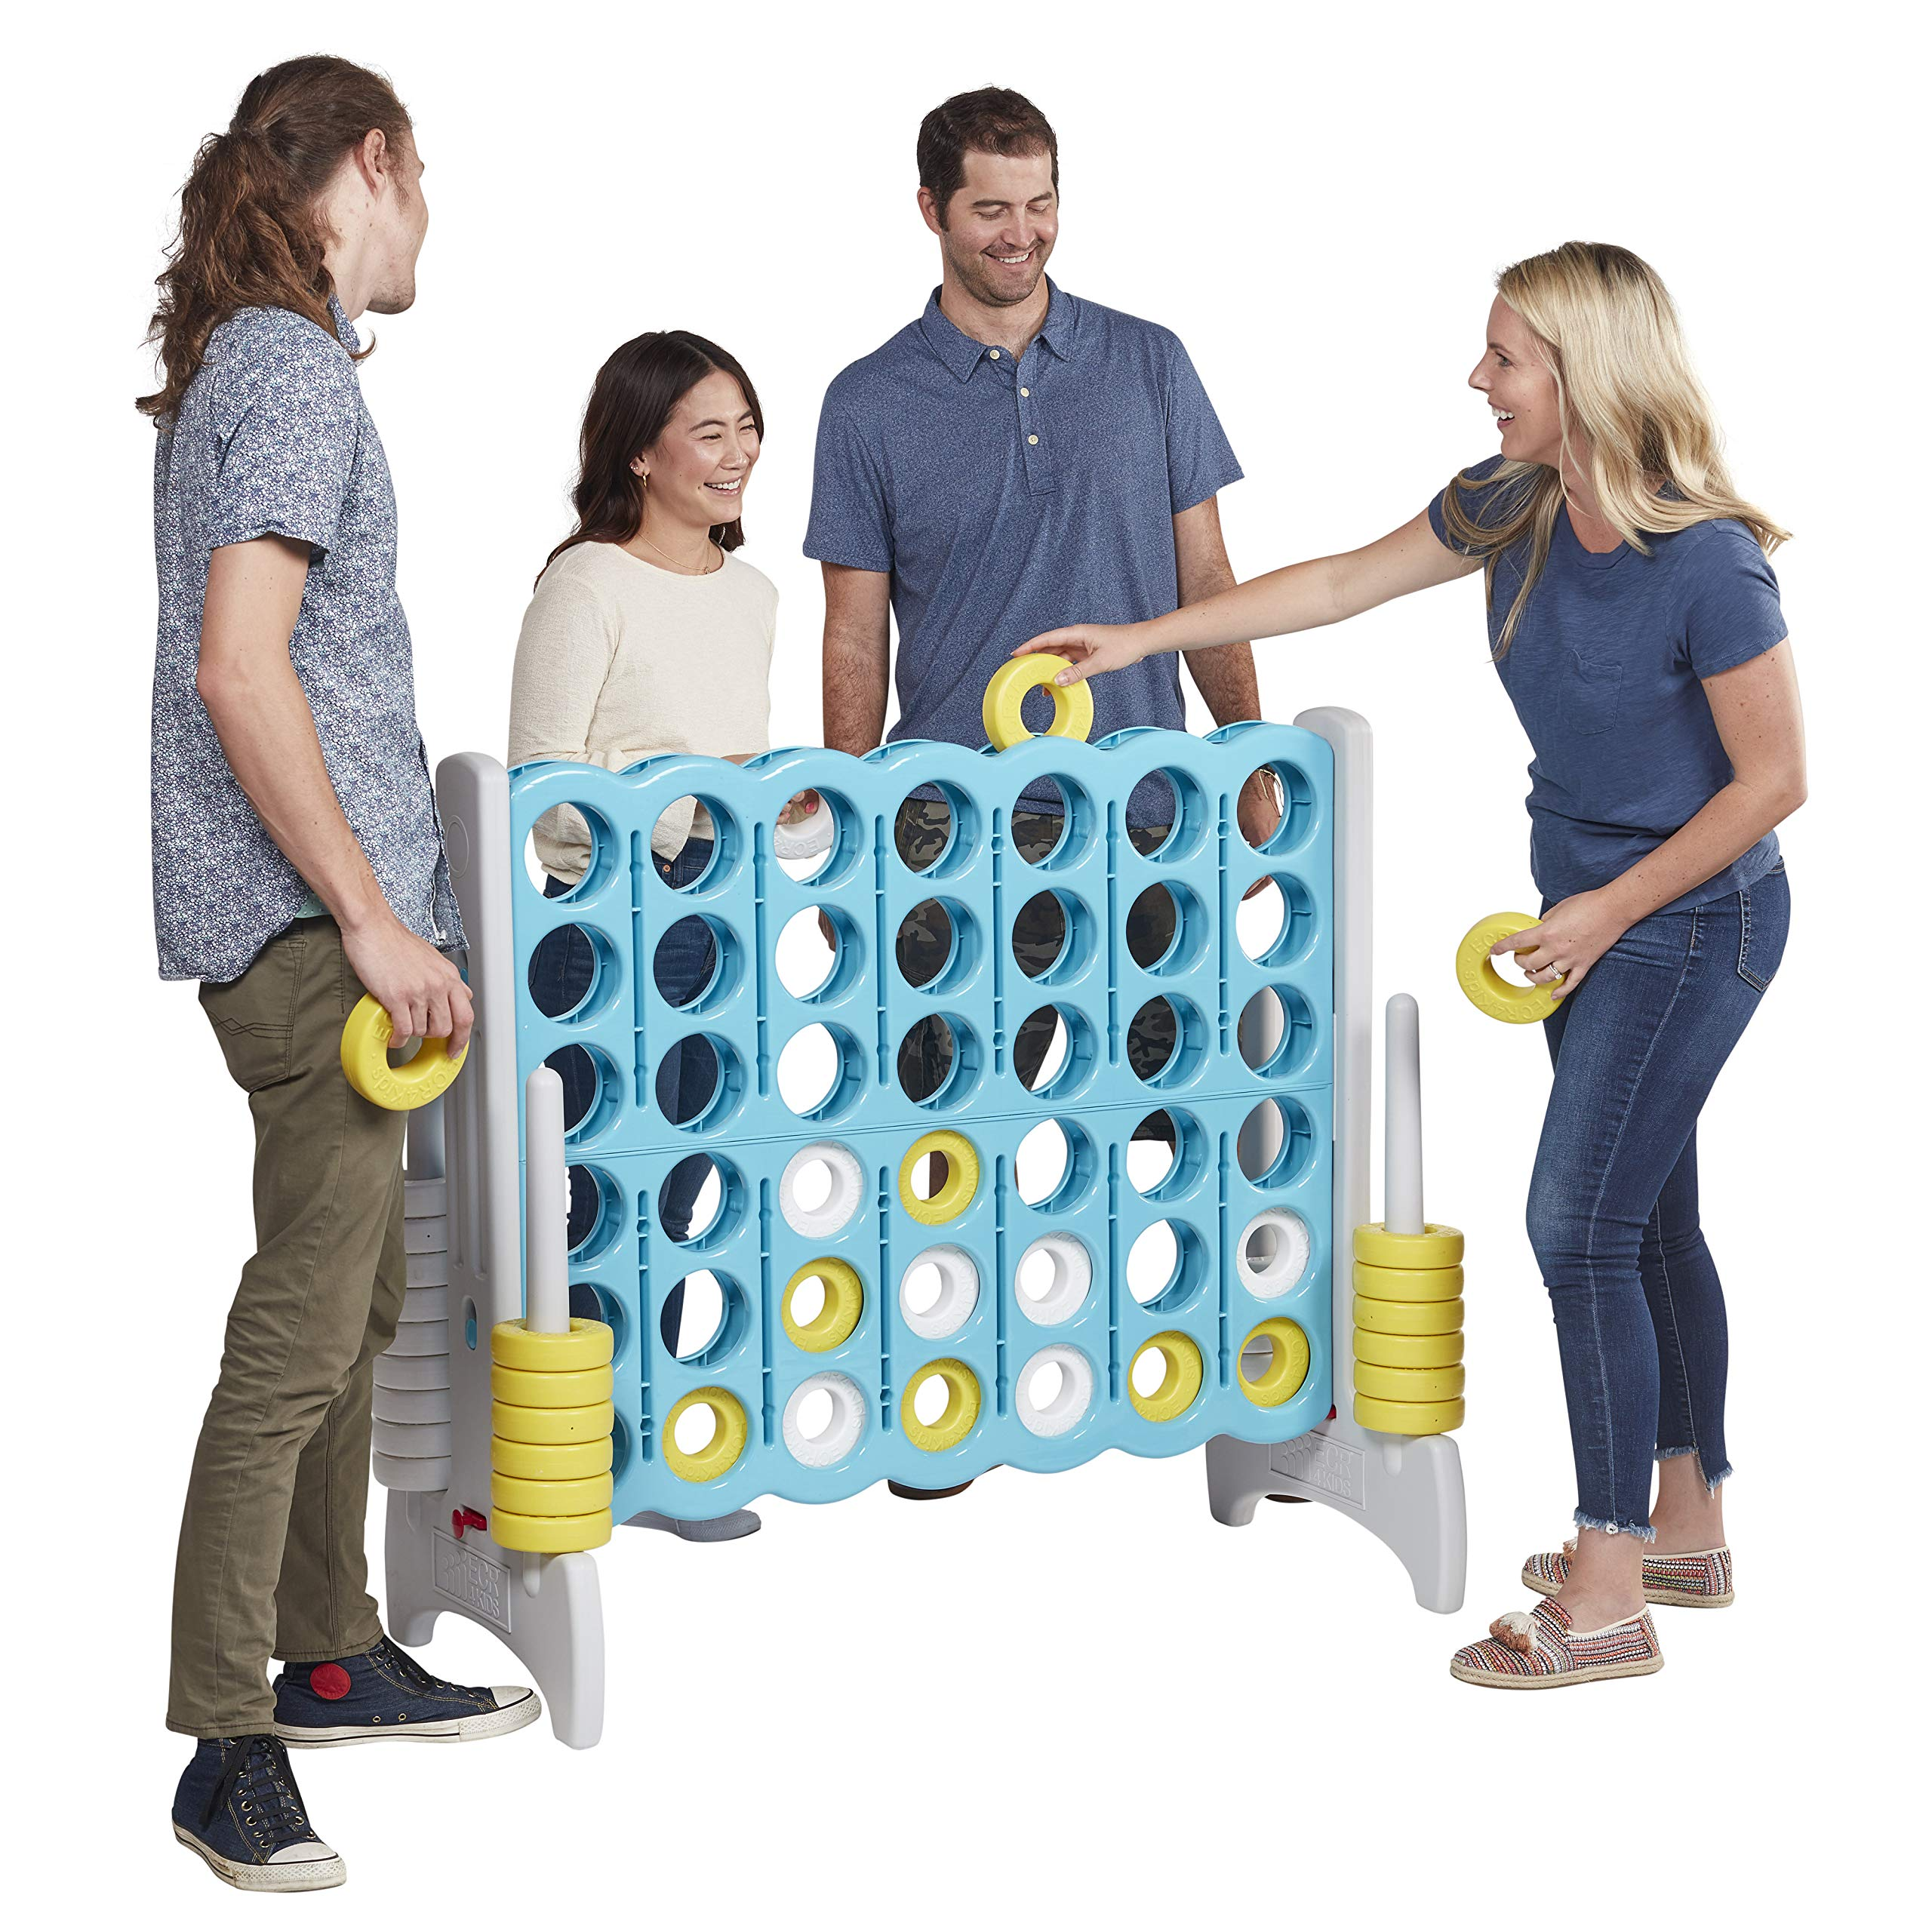 ECR4Kids Jumbo 4-to-Score Giant Game Set - Oversized 4-in-A-Row Fun for Kids, Adults and Families - Indoors/Outdoor Yard Play - 4 Feet Tall - Sky Blue